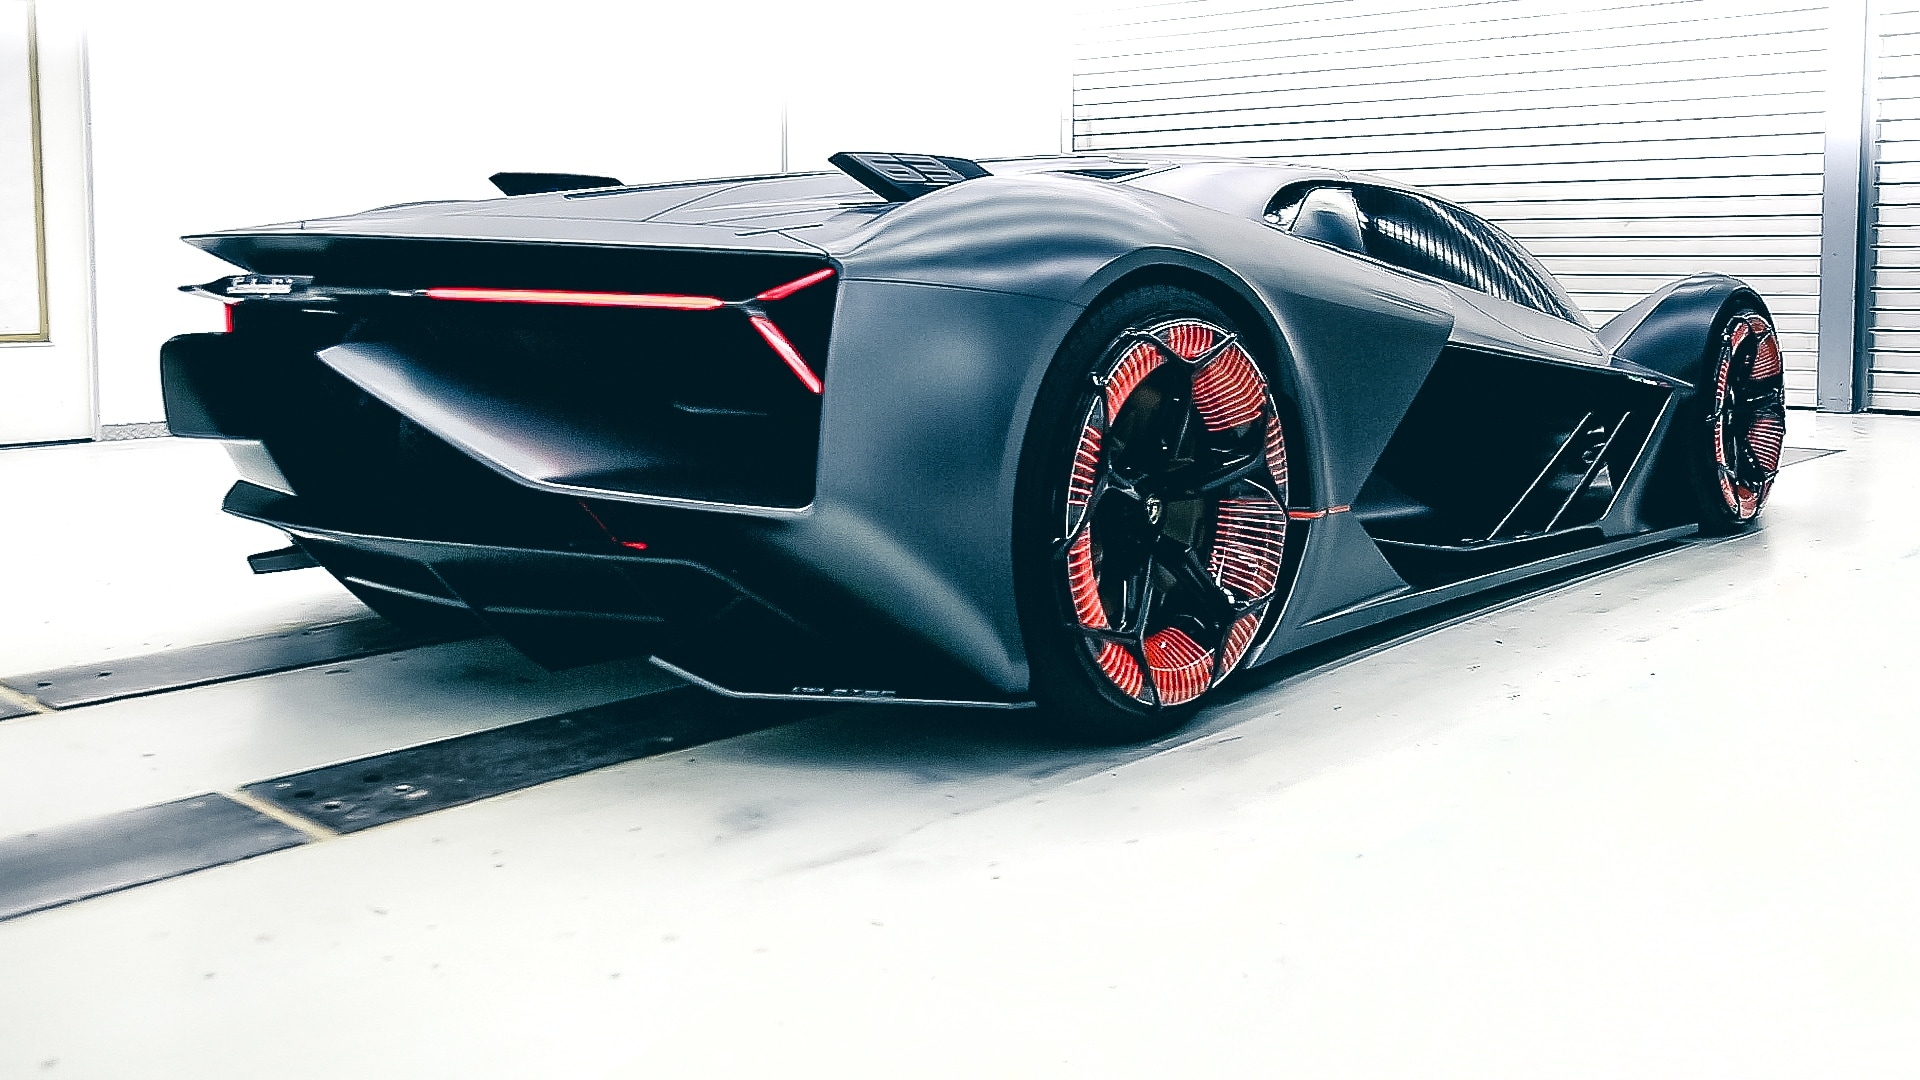 The Terzo Millenio's virtual cockpit has a Piloted Driving simulation which takes the driver on a virtual track by a virtual expert. Image Credits Lamborghini